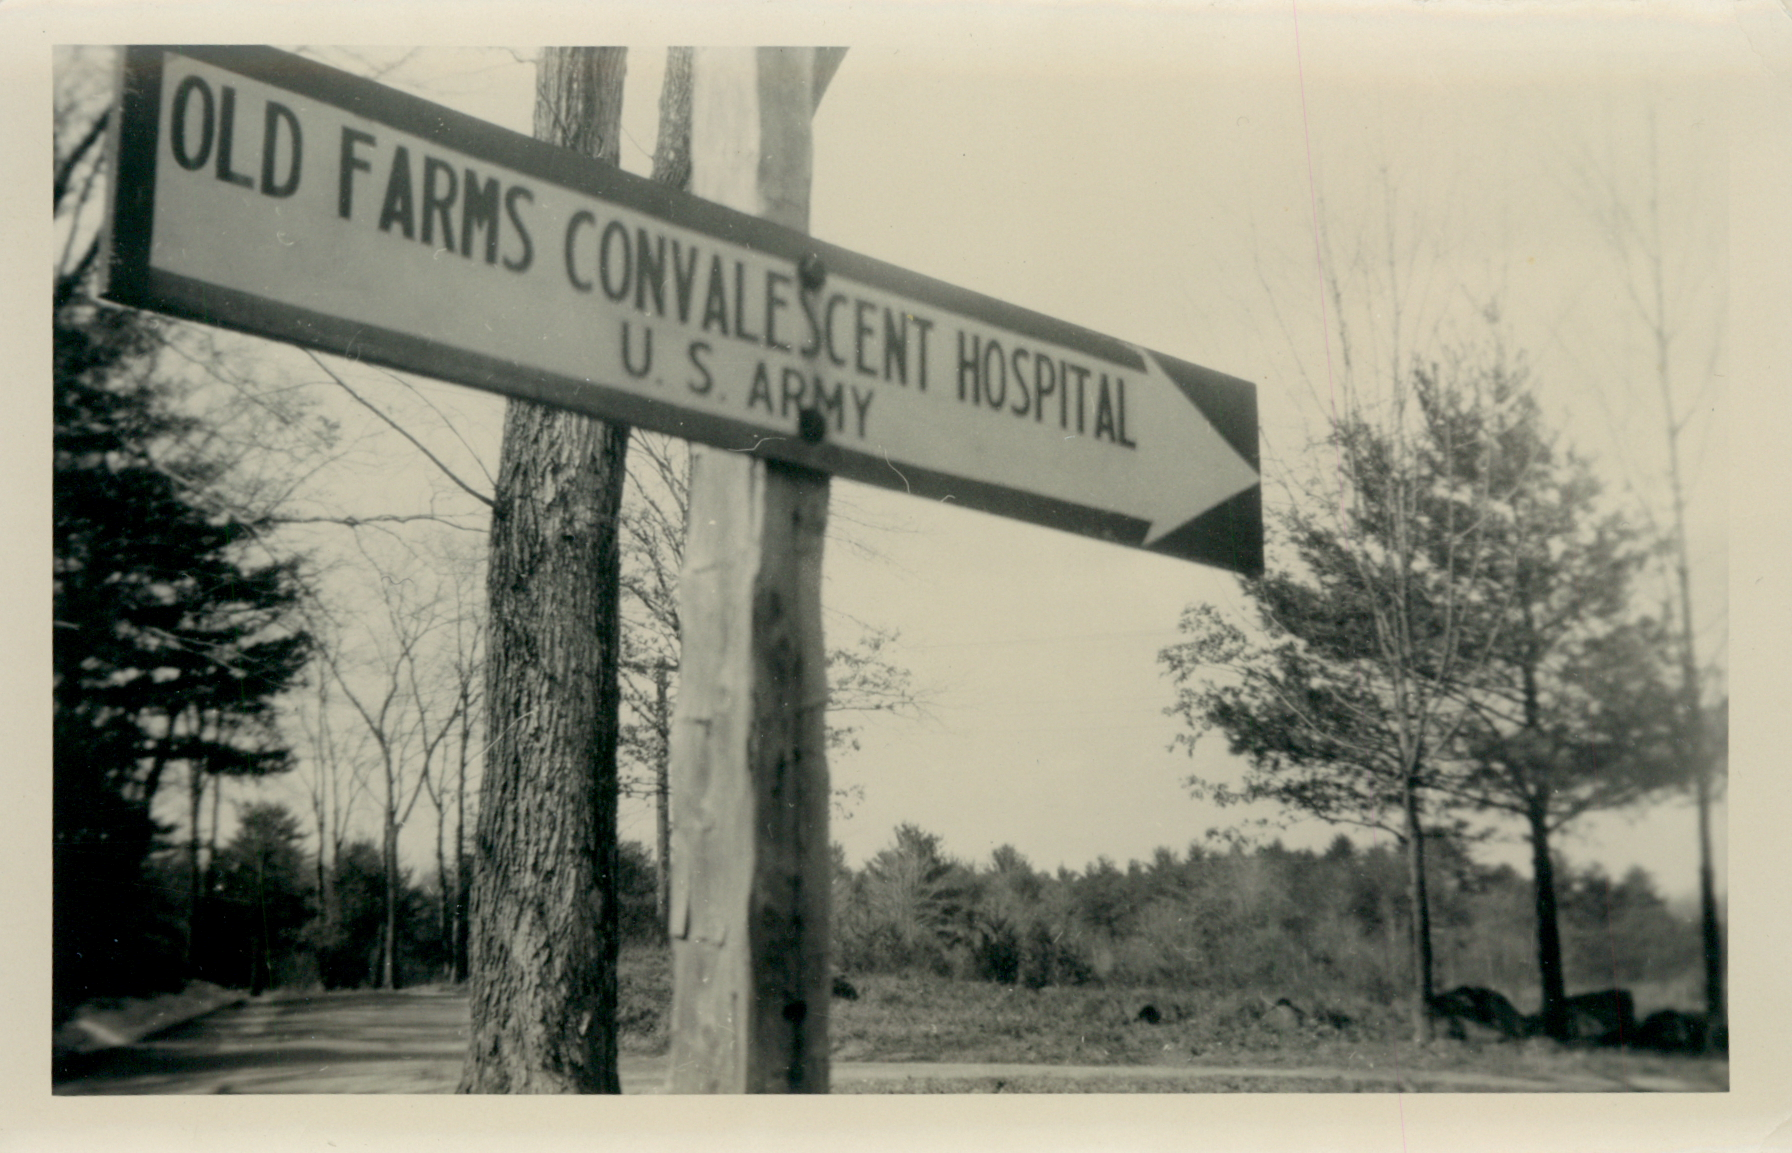 Avon Old Farms Convalescent Hospital